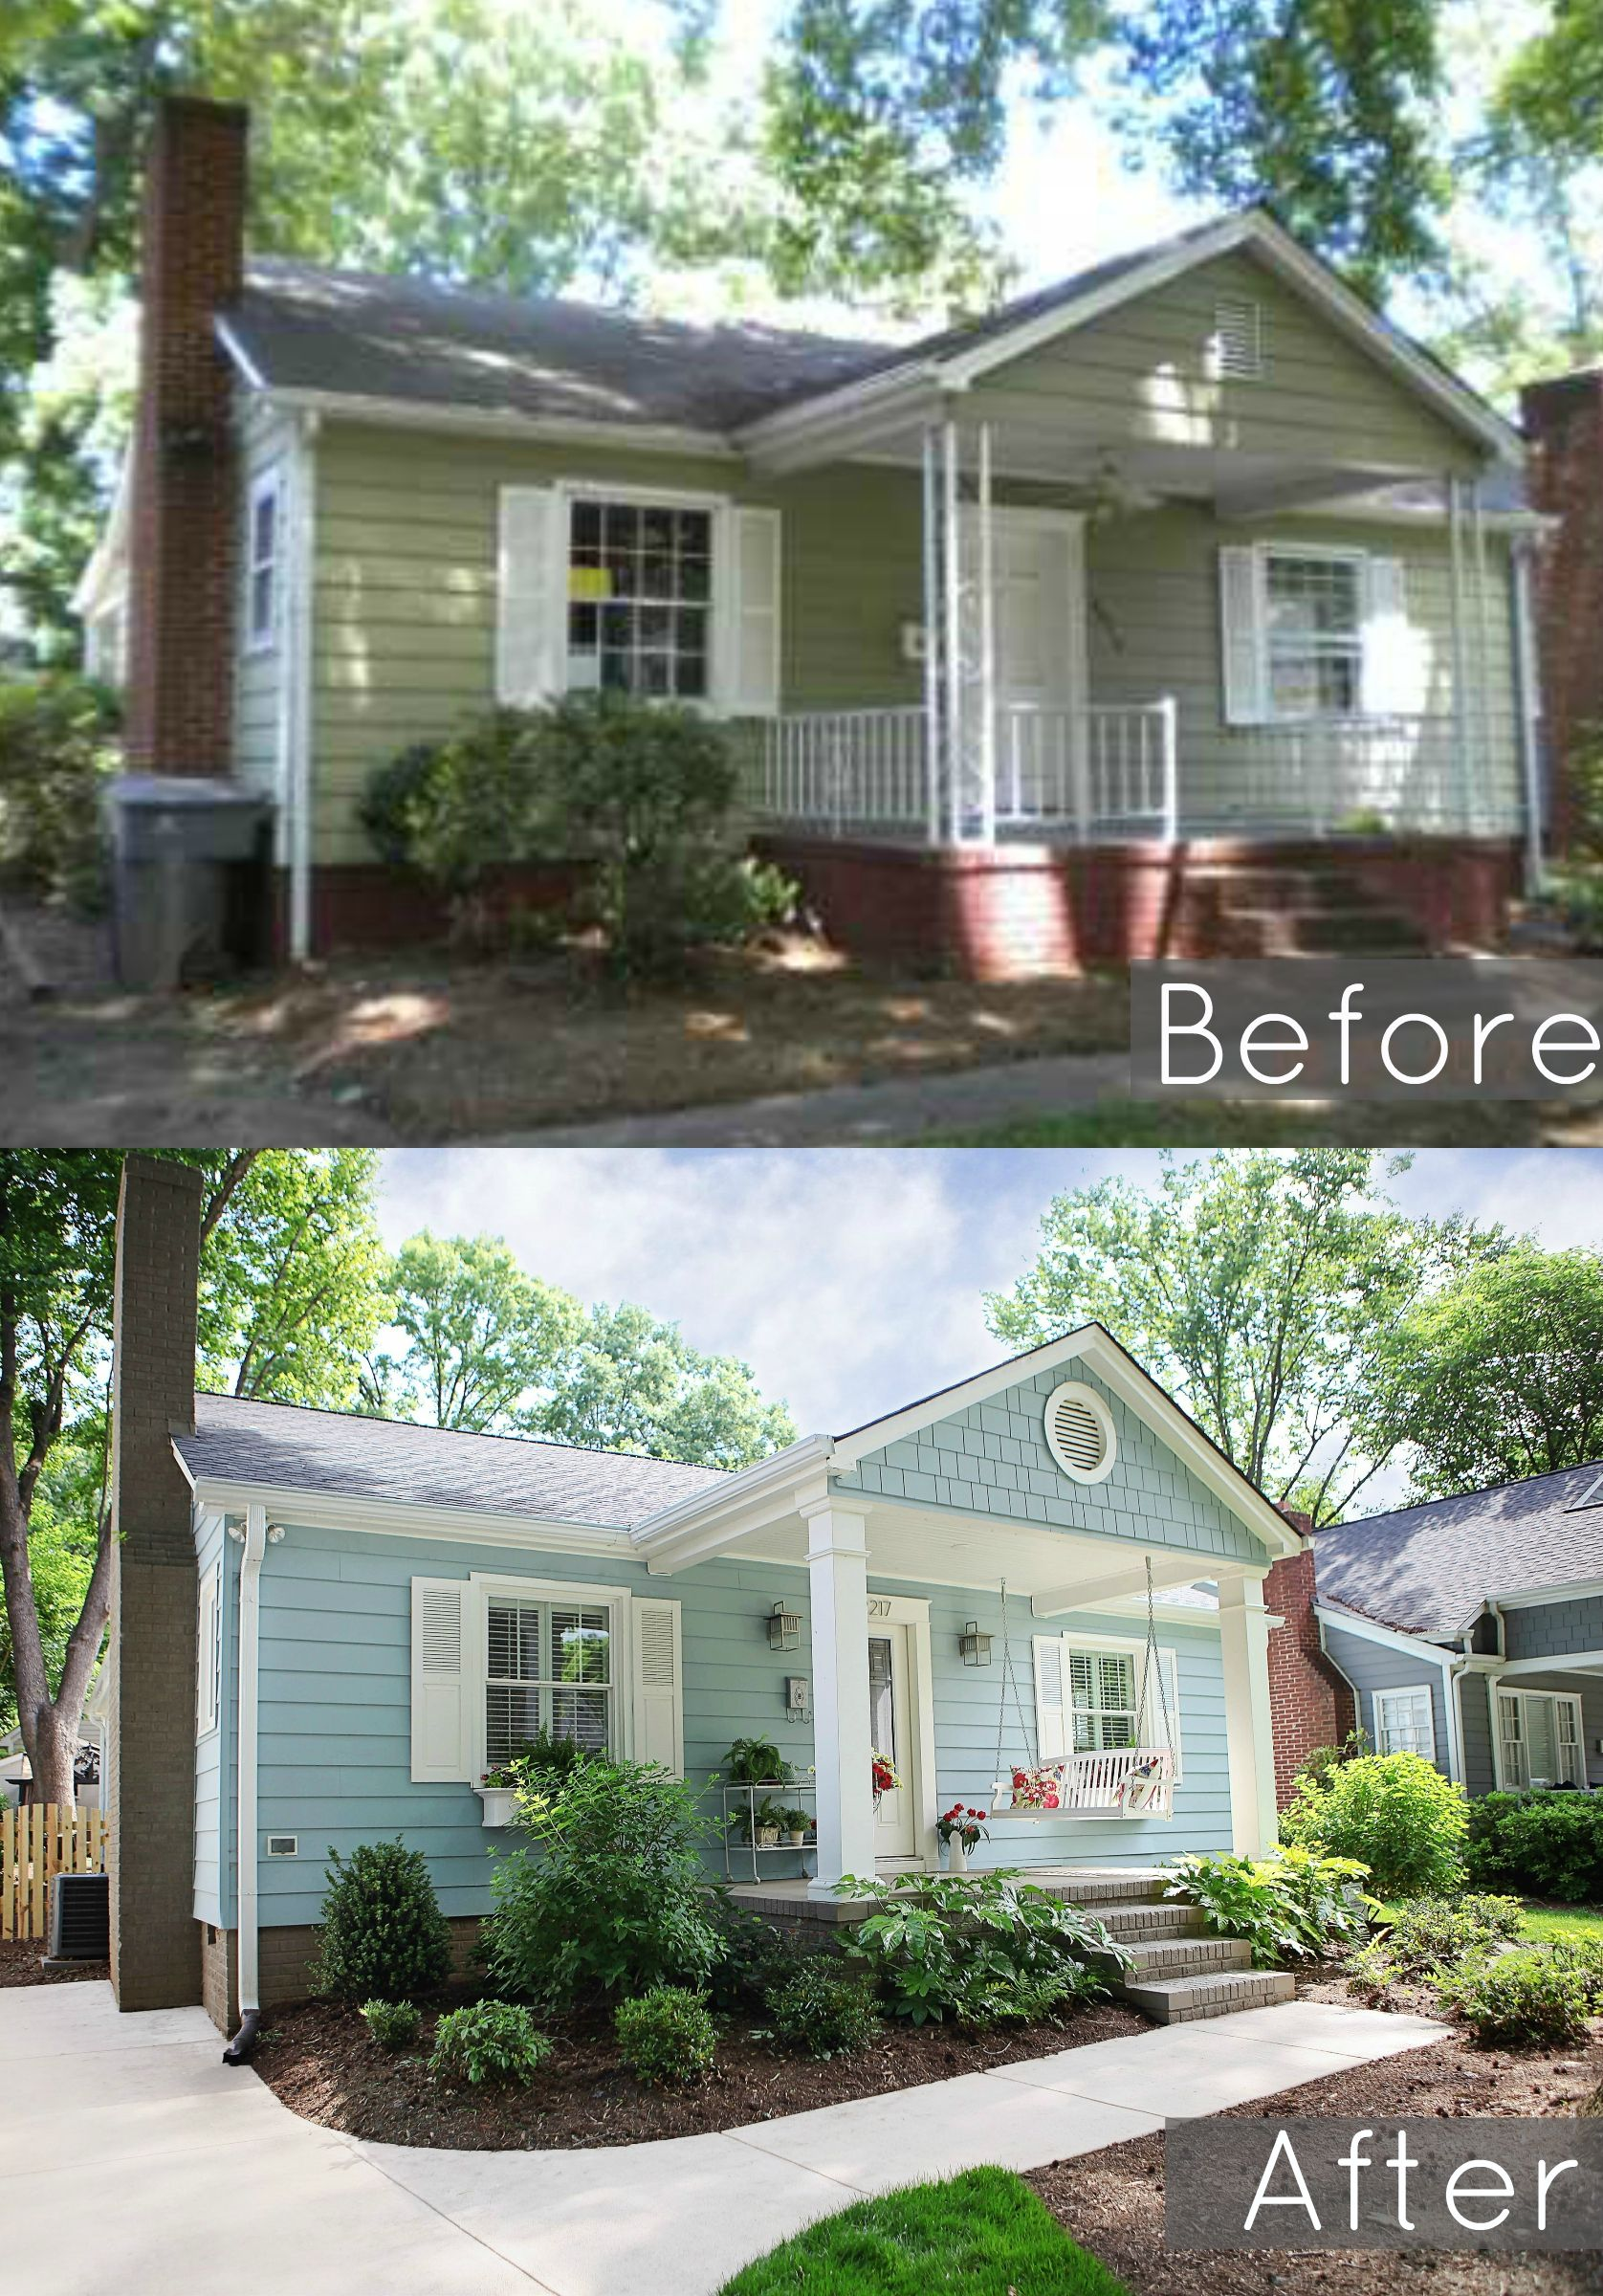 Before And After Of Our 1940 S Bungalows Exterior Baystreetbungalows Houseflip Remodel Bungalow Beforeandafter